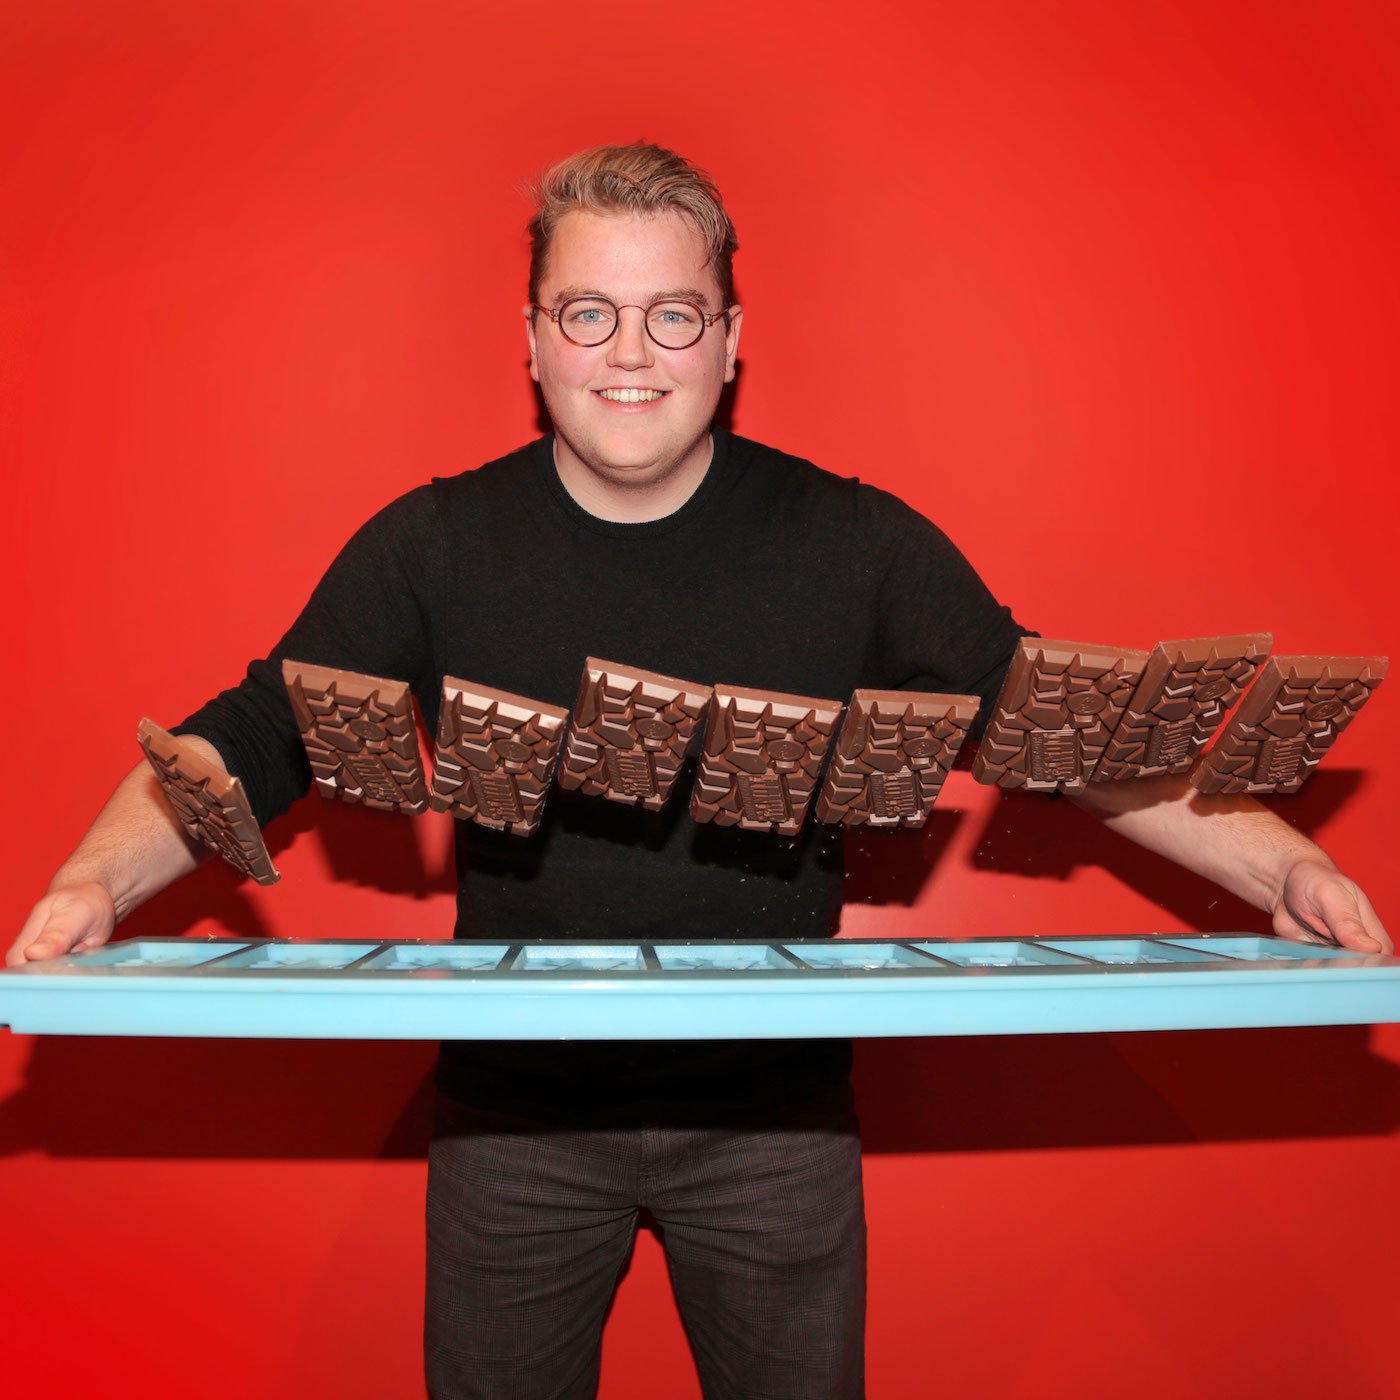 Bas chocolatier bij Tony's Chocolonely